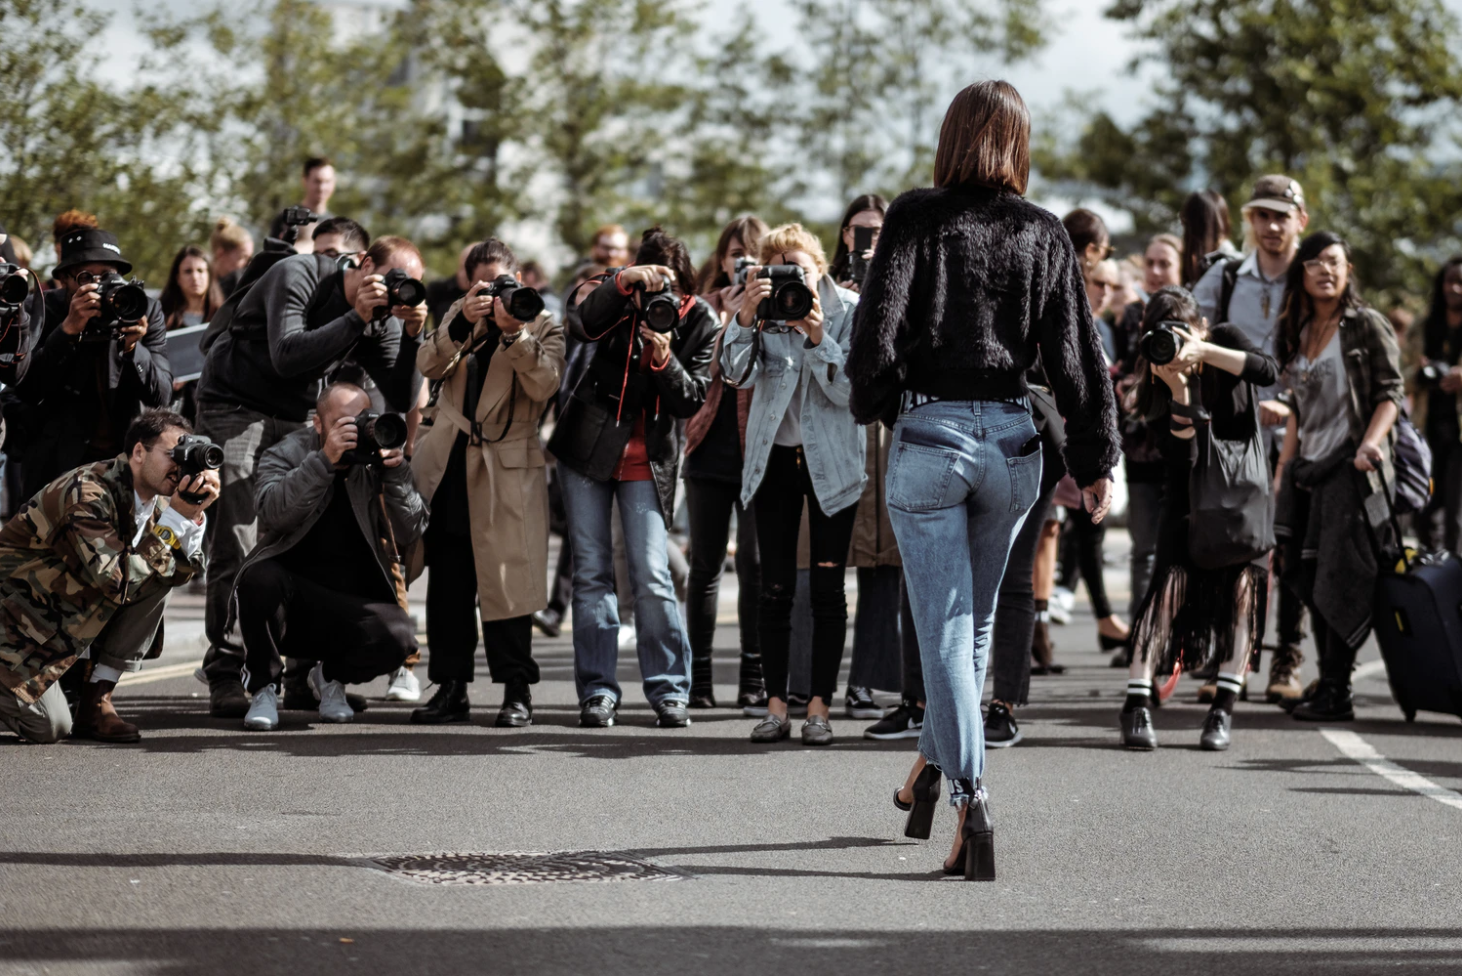 Woman photographed by paparazzi